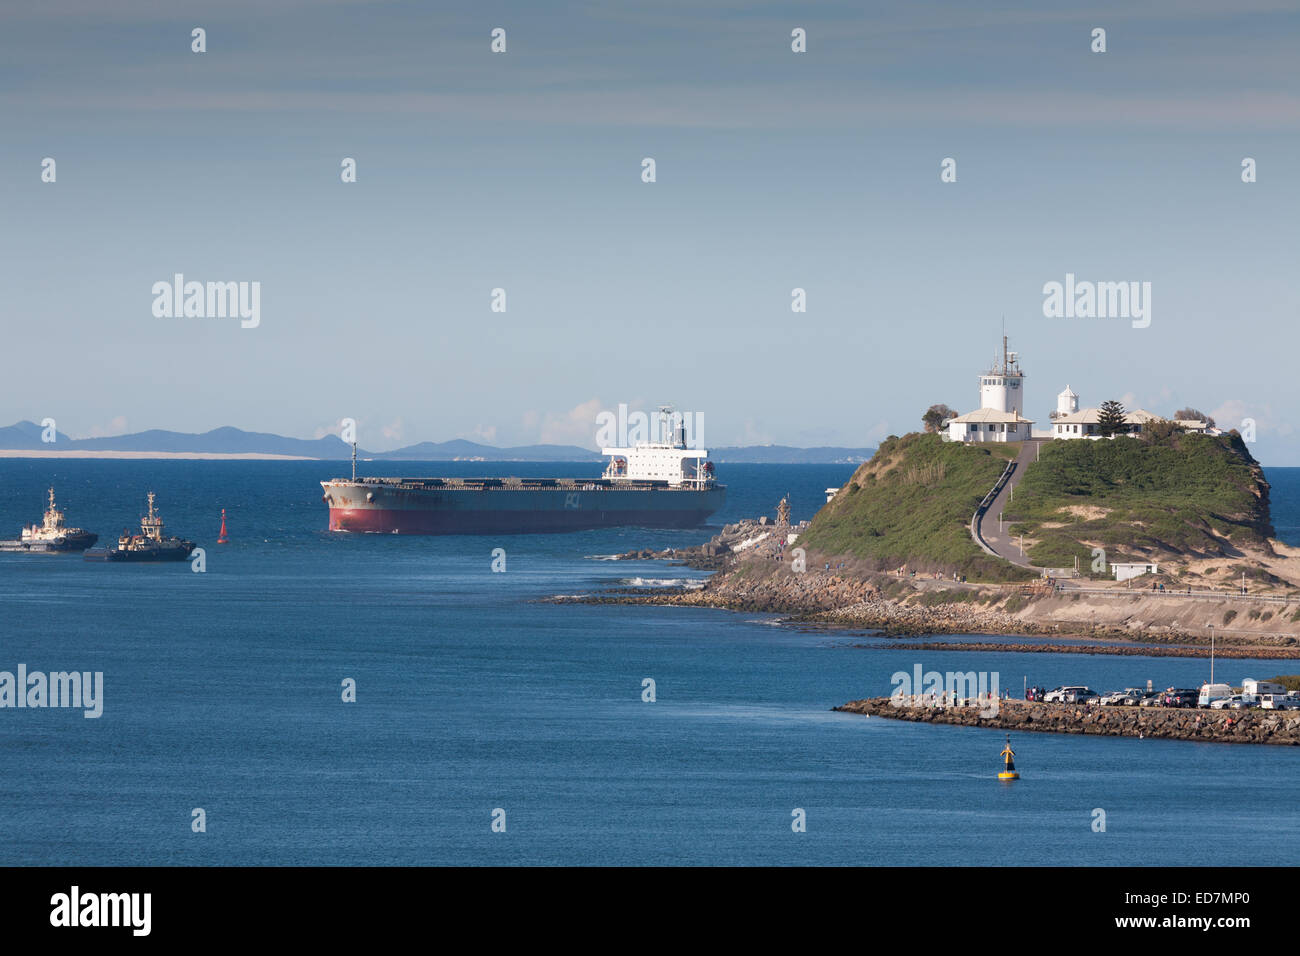 Bulk Carrier Ikan Kedewas passing the Nobbys Head Lighthouse as it approaches its berth in Newcastle NSW Australia - Stock Image